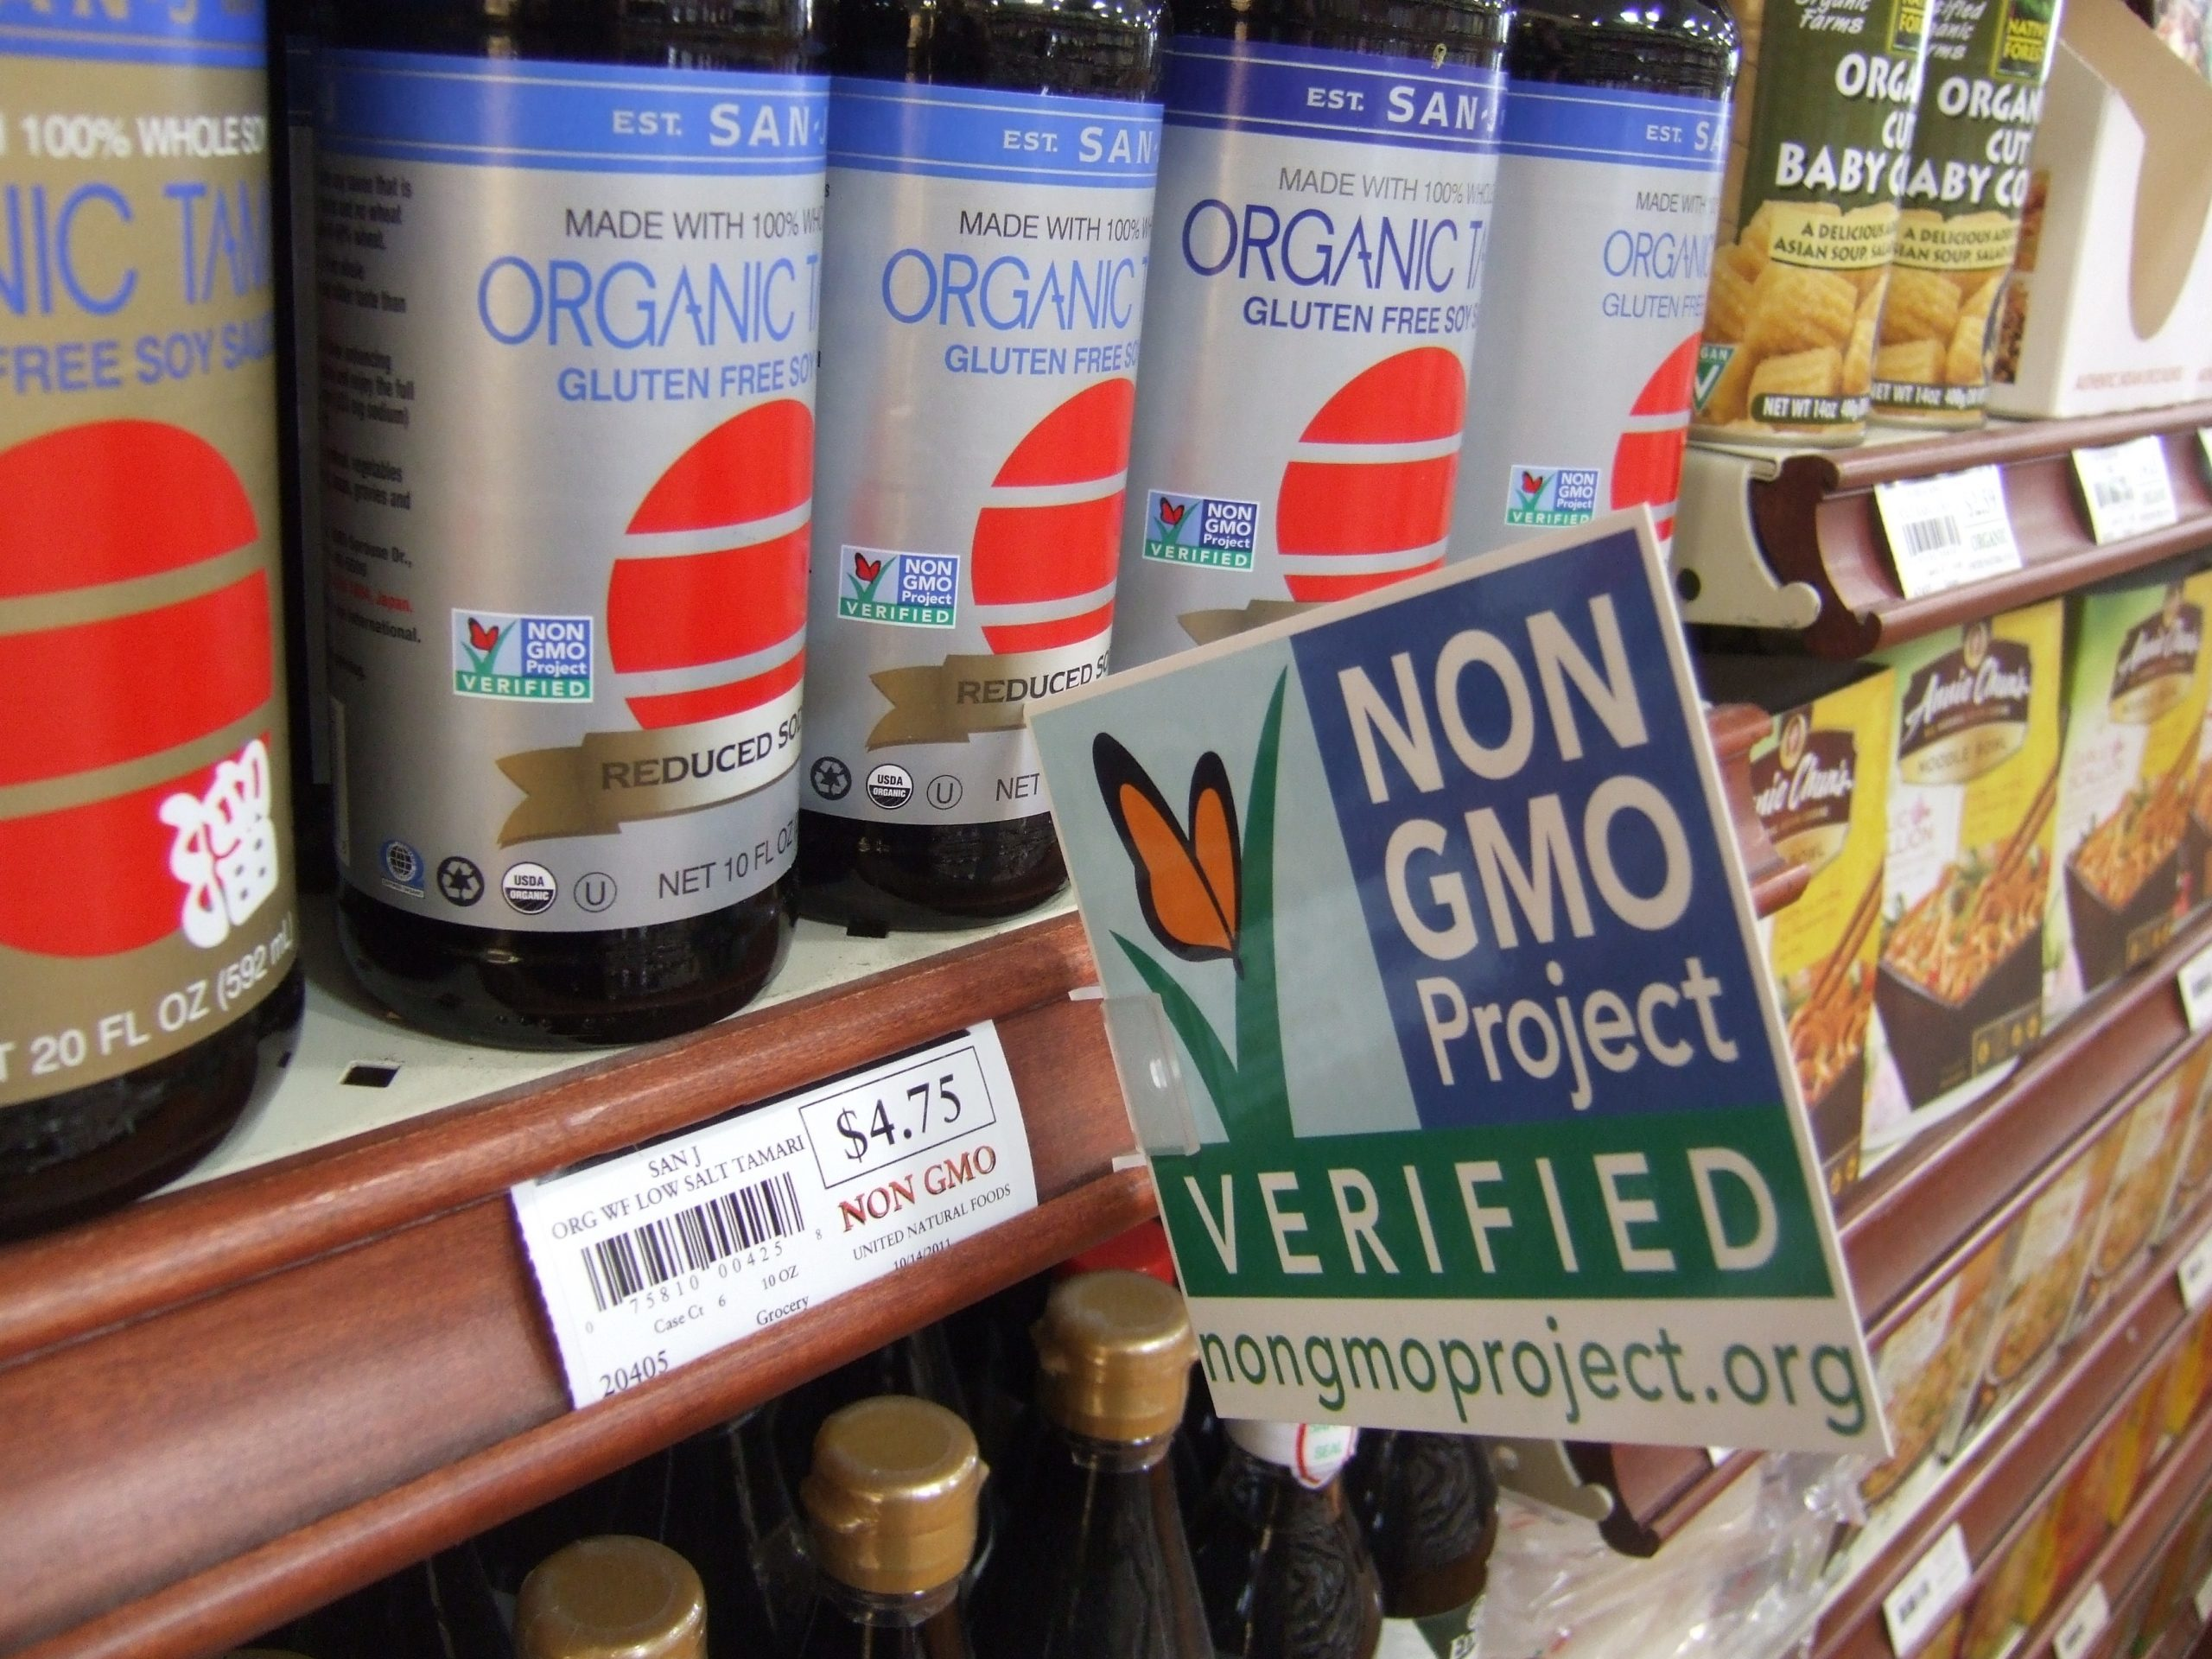 Non-GMO Project soy sauce on shelf